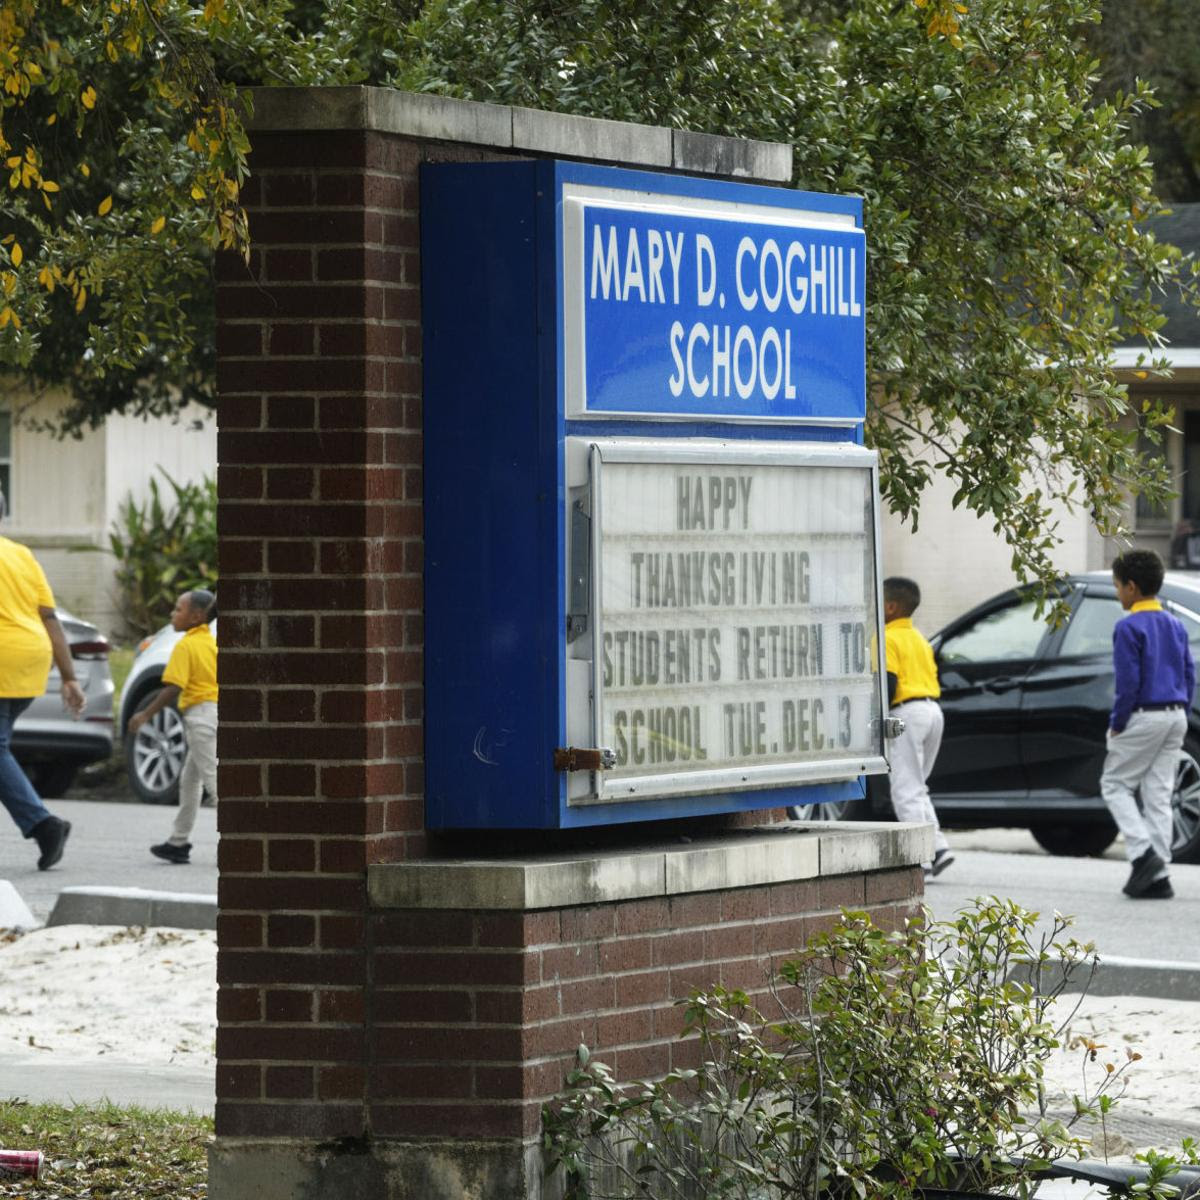 Former charter school operator owes nearly $1 million, New Orleans school district says in suit